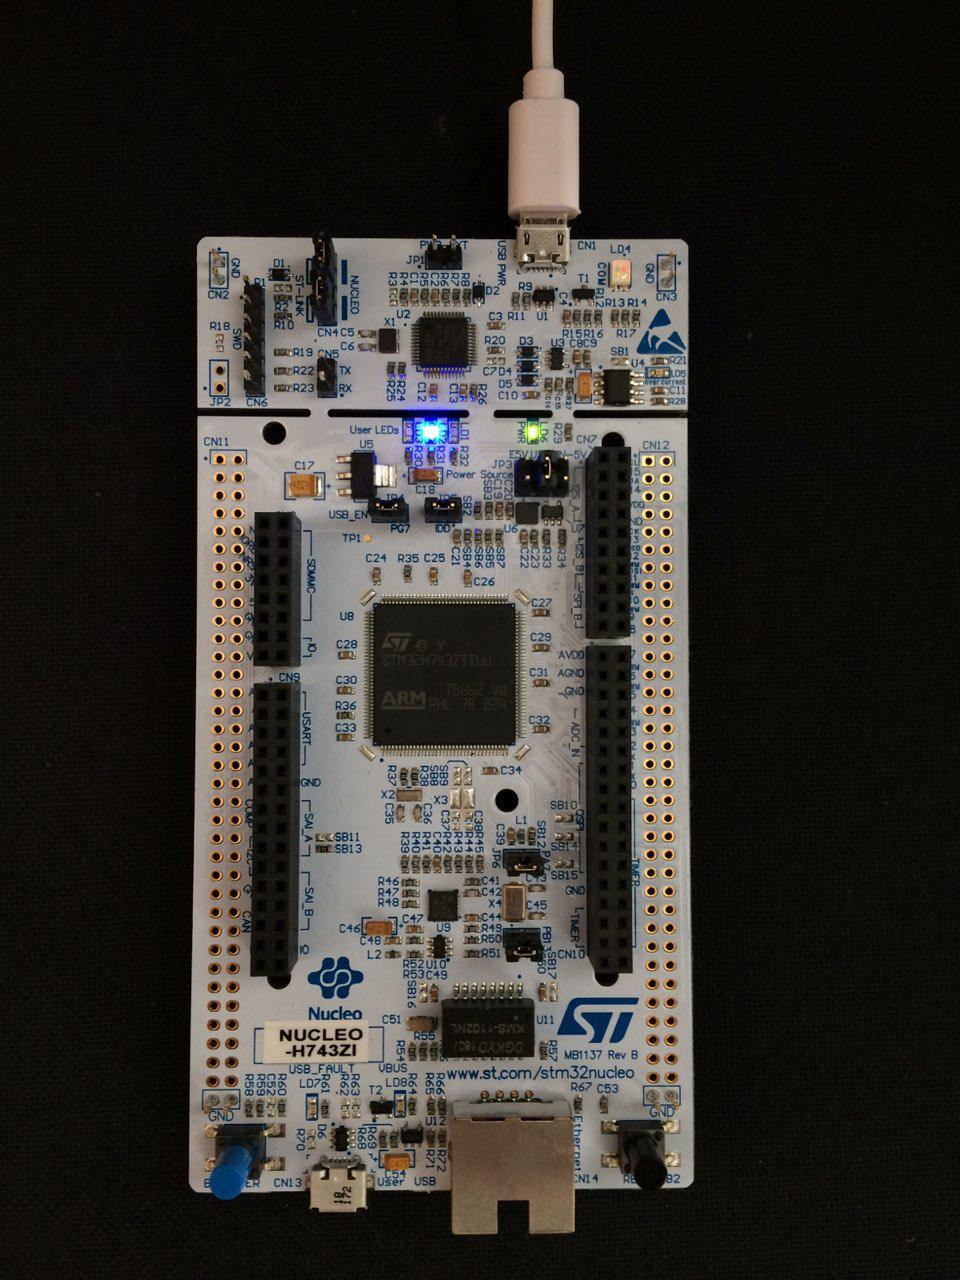 Embedded programming with the STM32